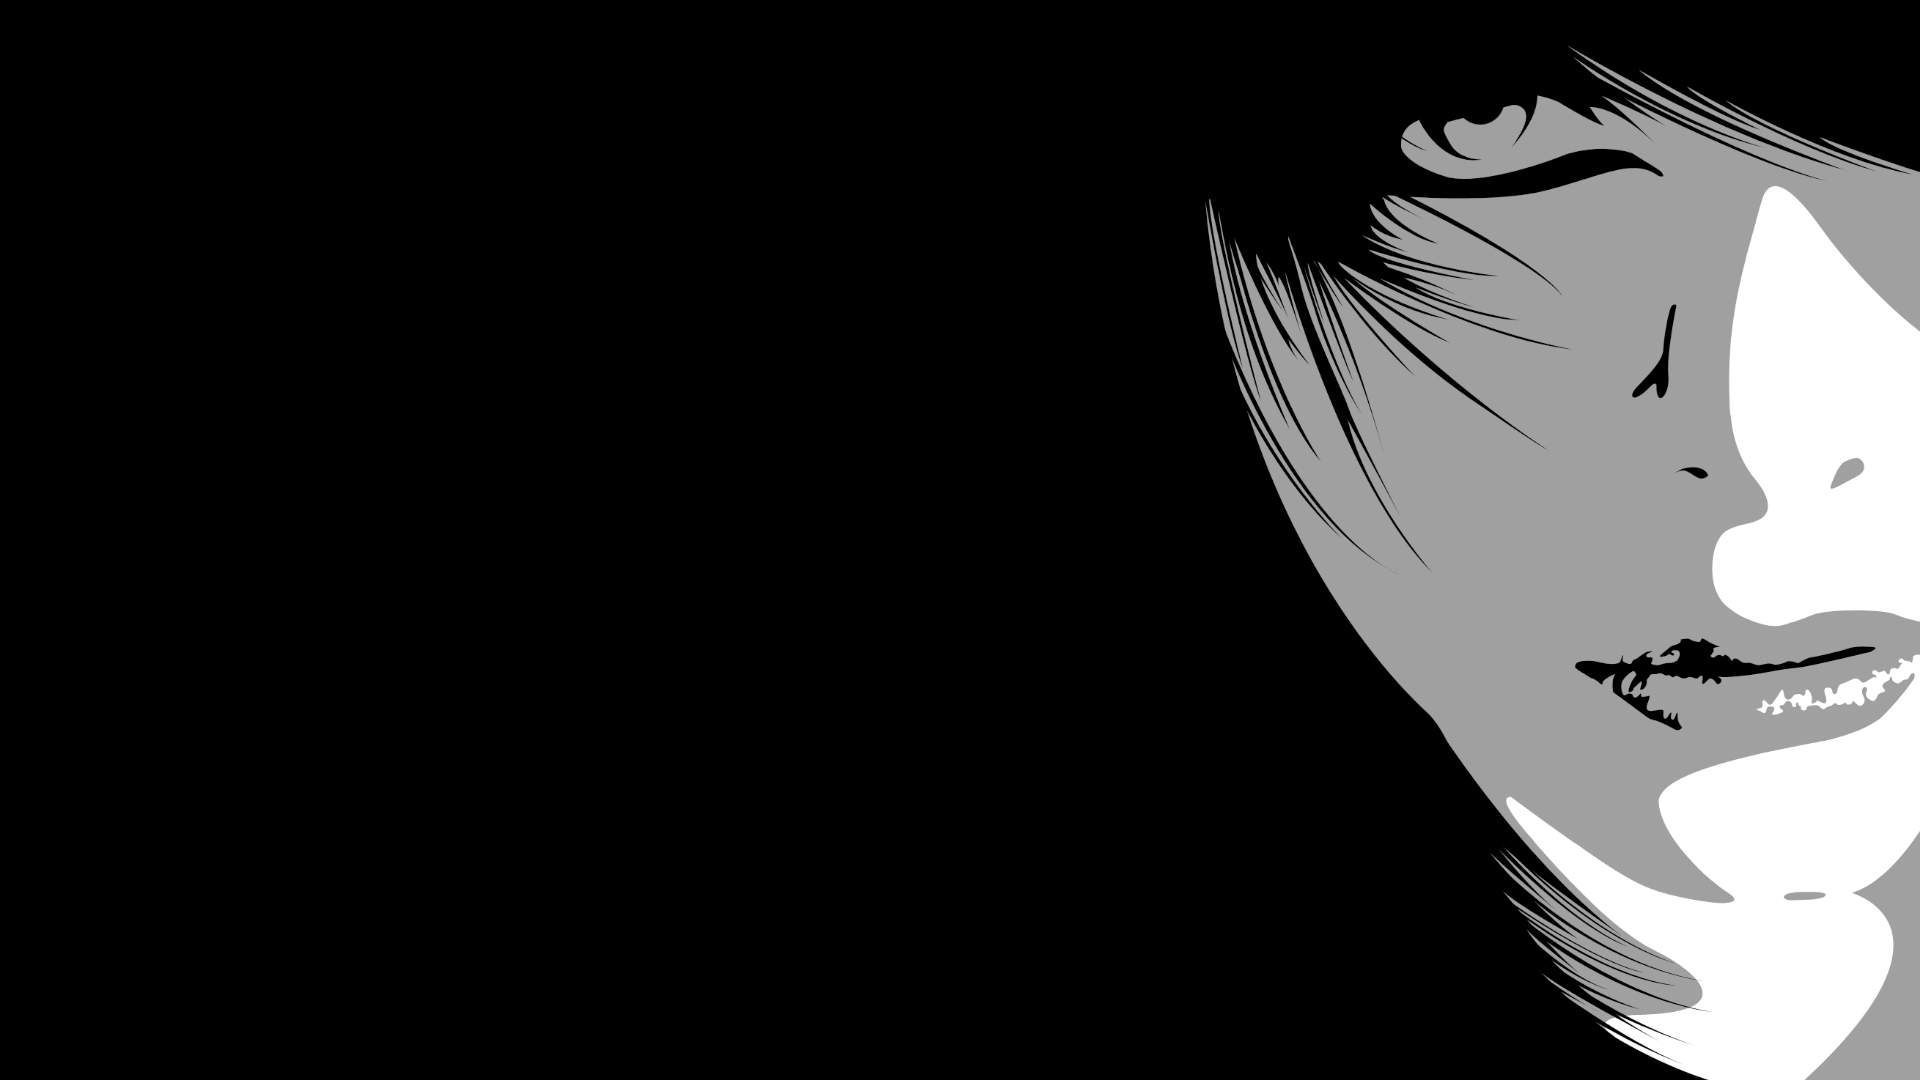 Emo Computer Wallpapers Desktop Backgrounds x ID HD 1920x1080